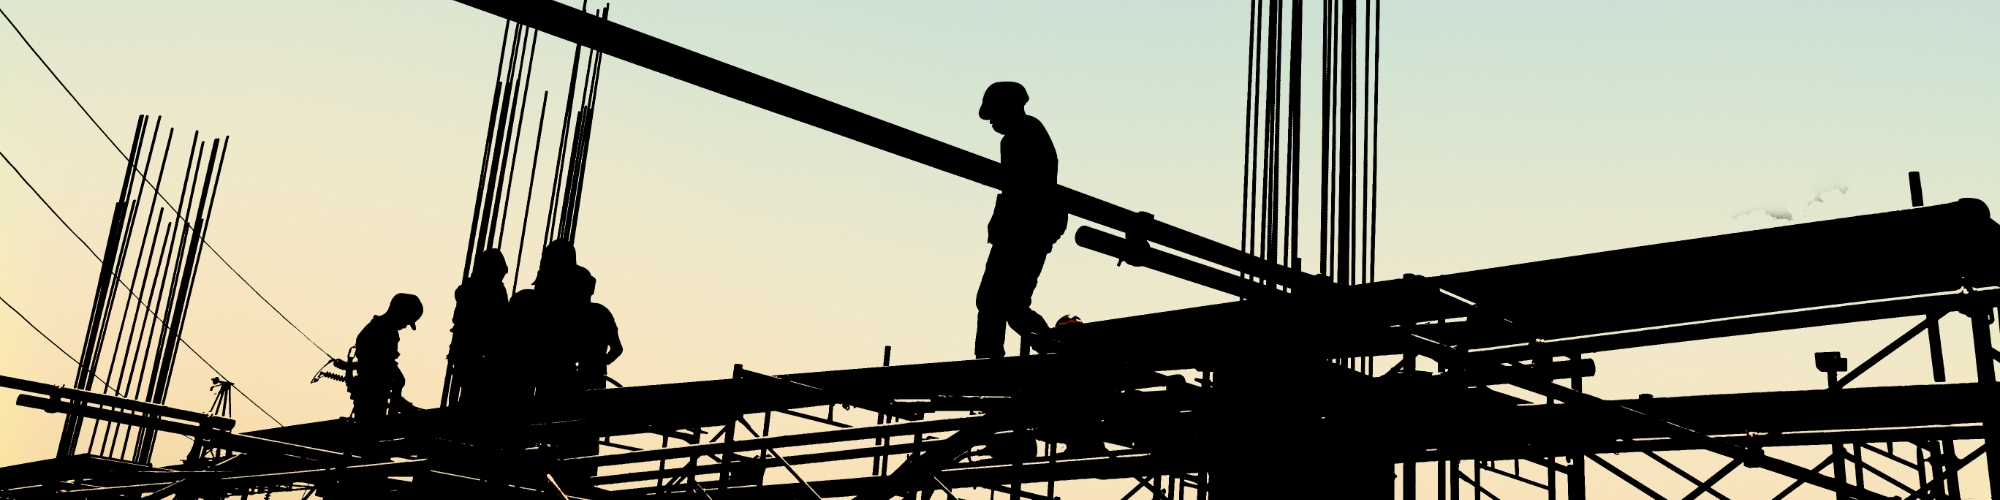 Silhouette of a man on steel beams working